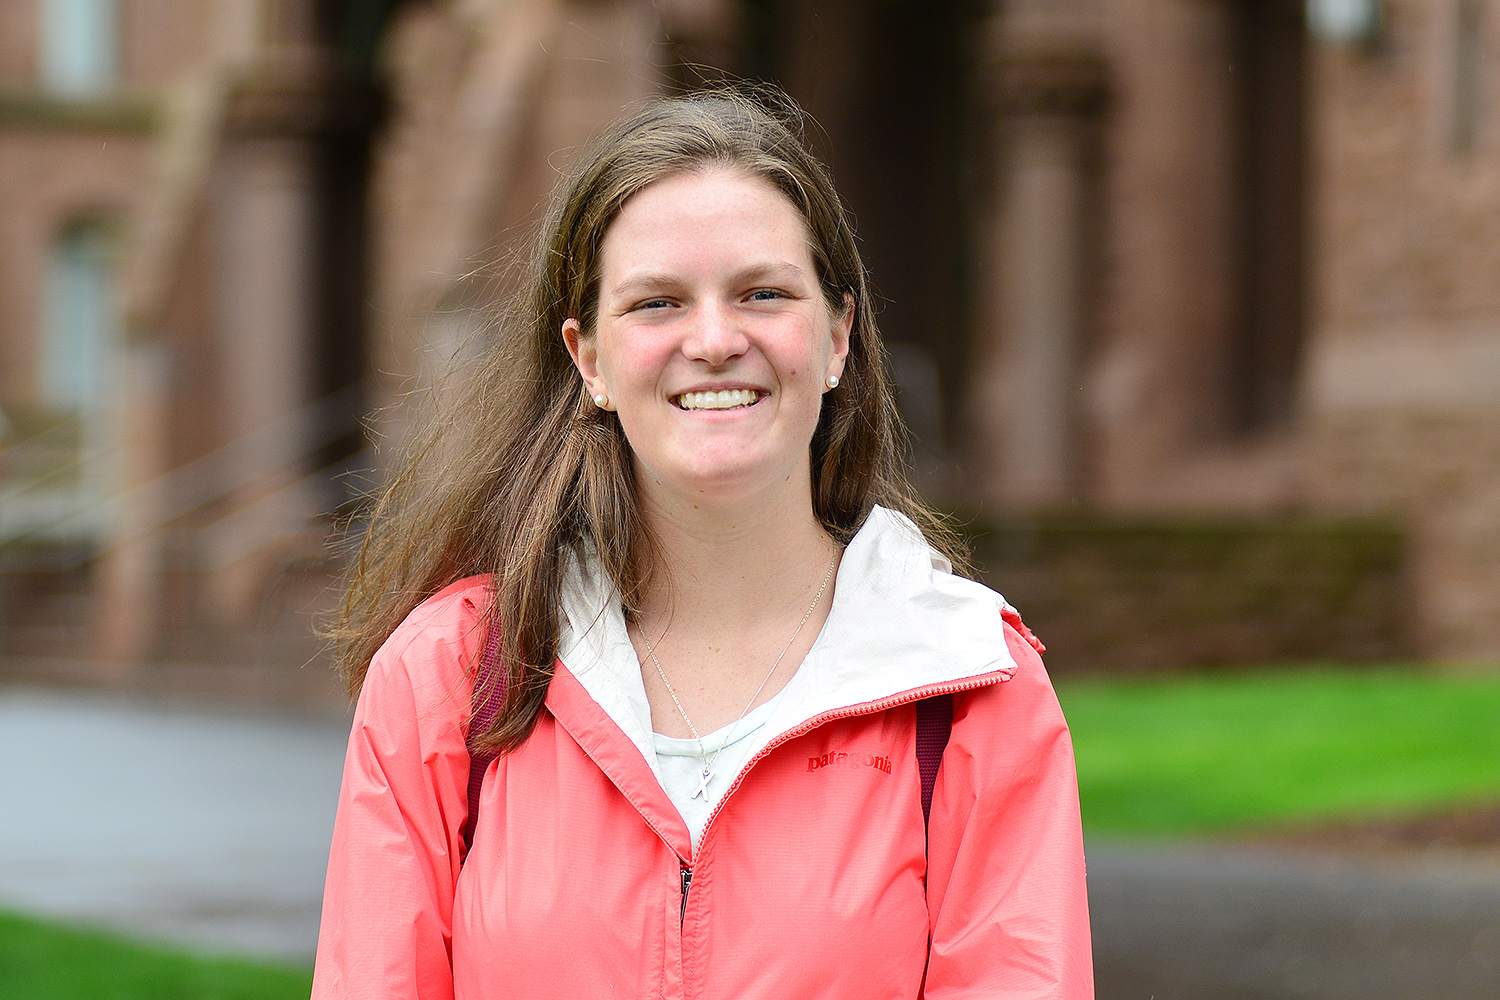 Emma Porrazzo '19 is one of 550 American students in the U.S. to receive a Critical Language Scholarship. She will spend about eight weeks abroad learning the Chinese language and culture in Suzhou, China. (Photo by Olivia Drake)